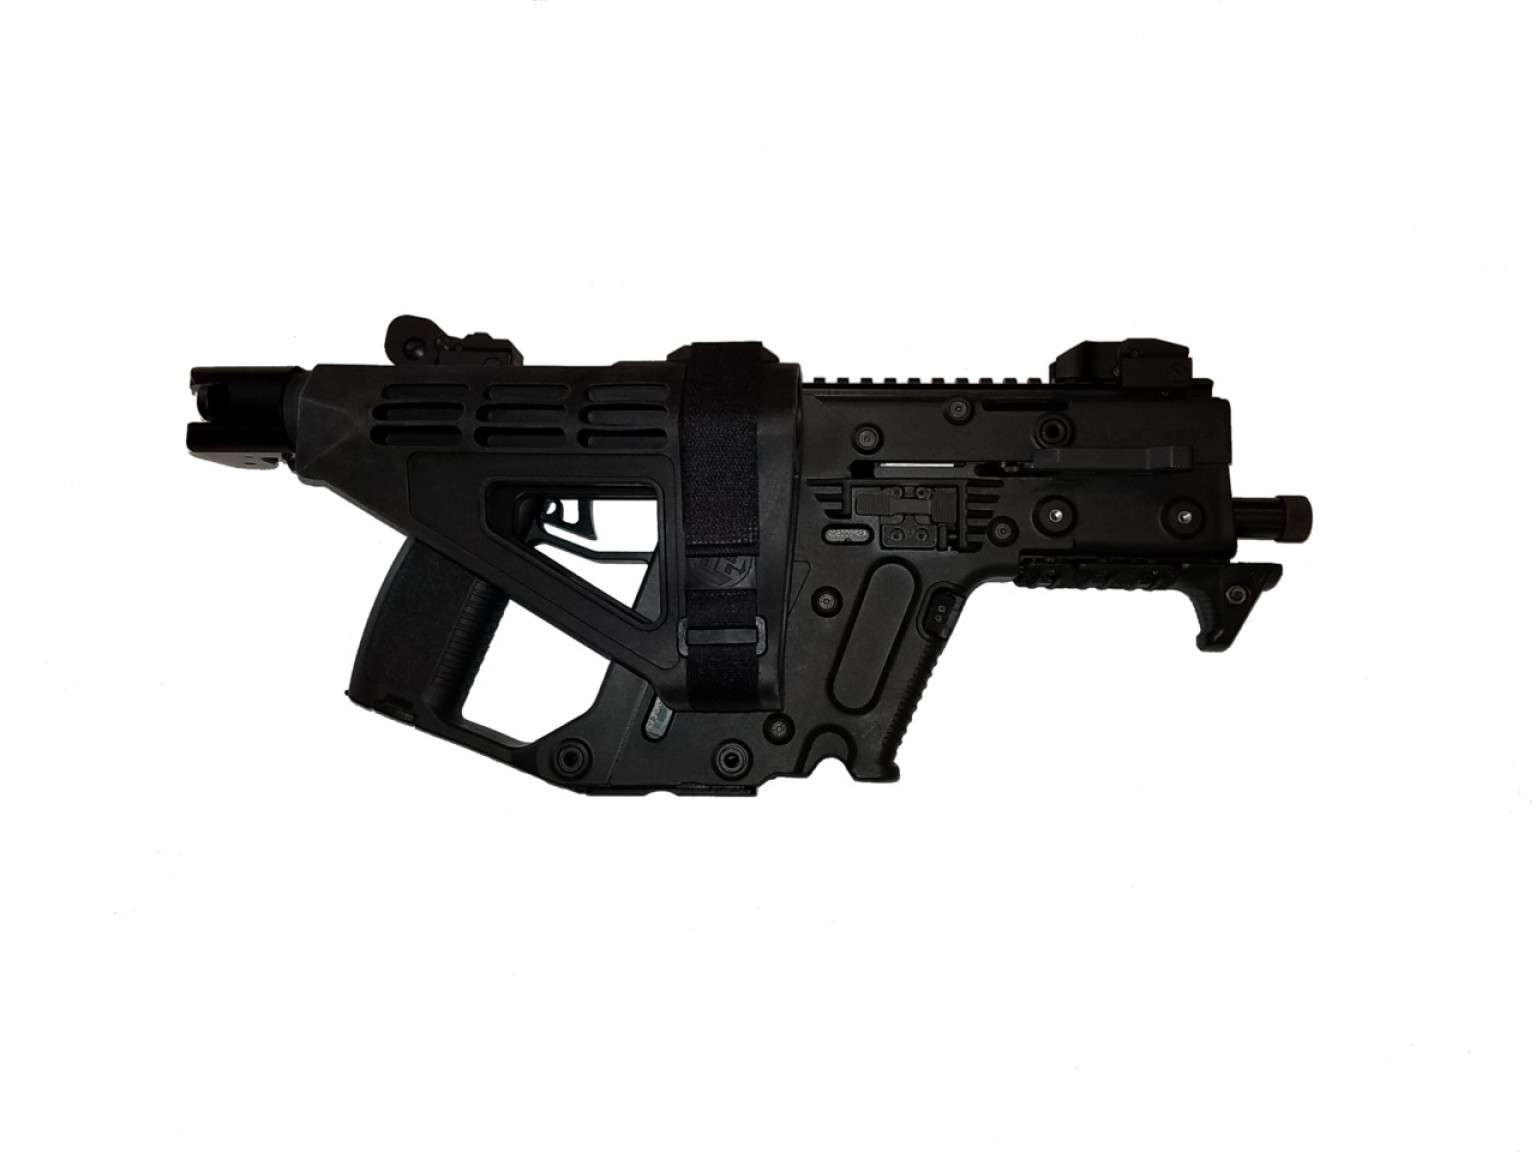 Kriss Vector Mods: American Built Arms Co Side Folder Mechanism For The Kriss Vector Modx